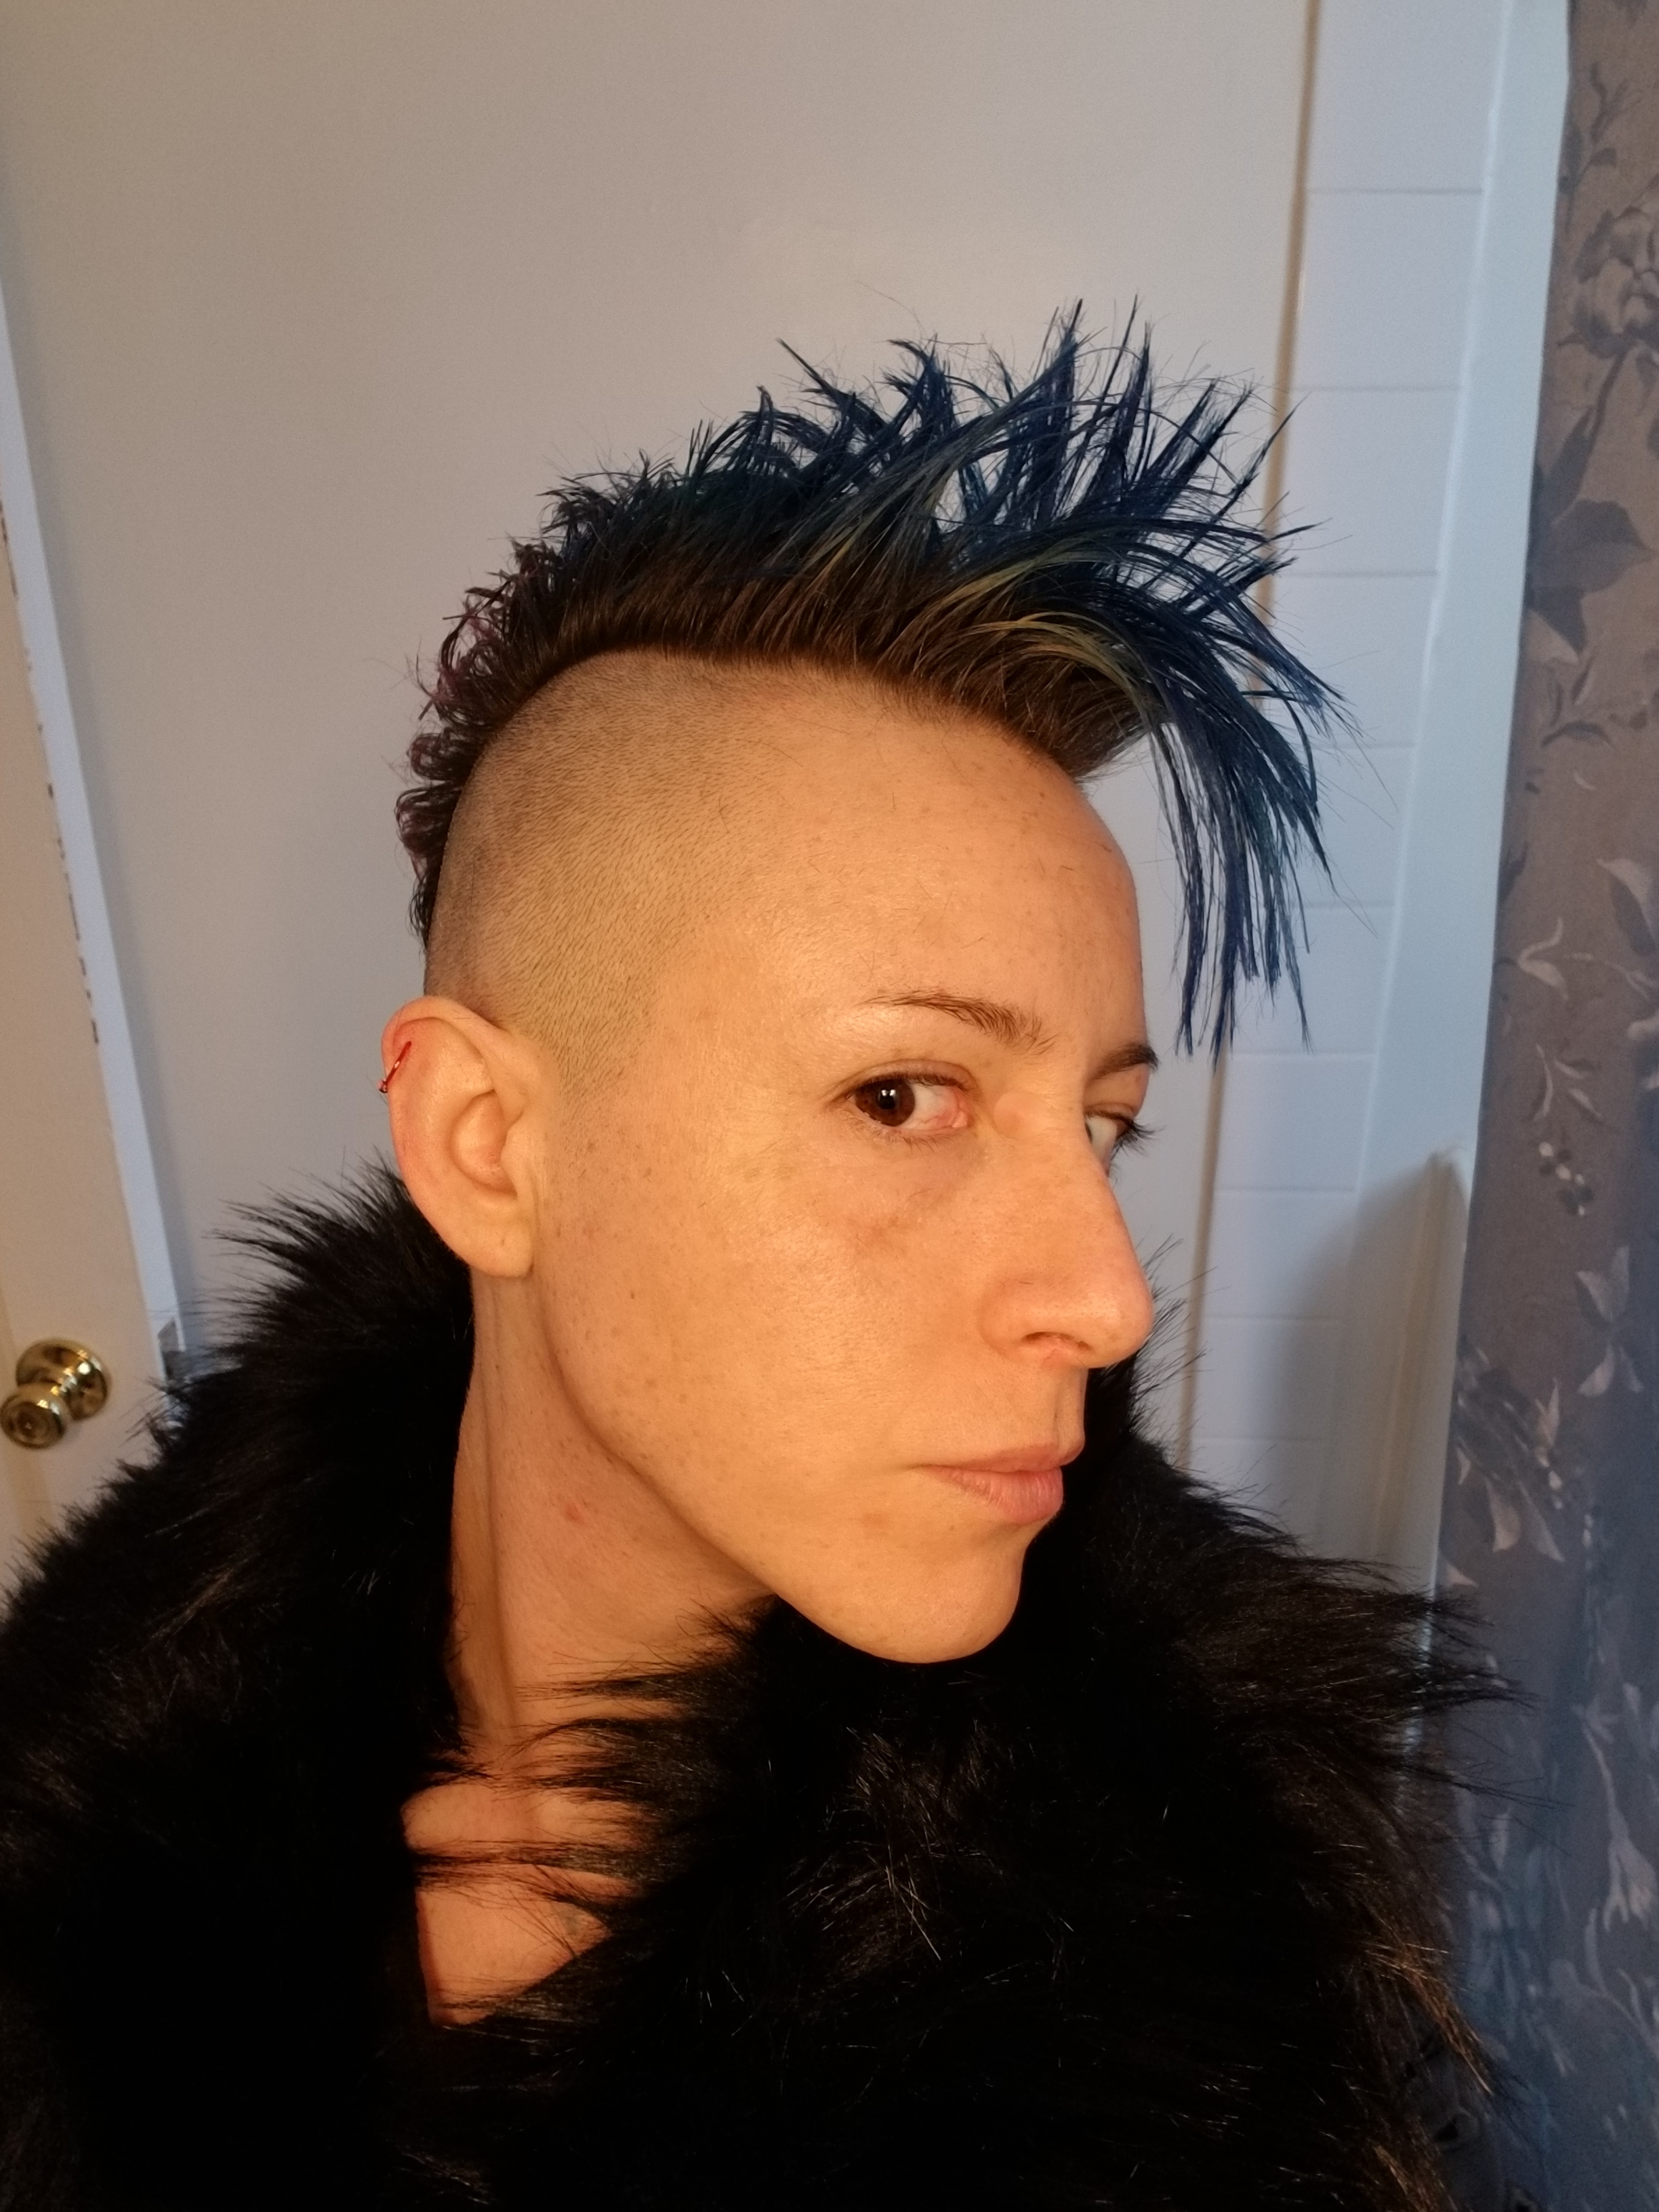 Emma Stewart - Emma Stewart (he/ they/ she) is a nonbinary trans poet. They are a first year poetry MFA candidate who writes about family and being queer.